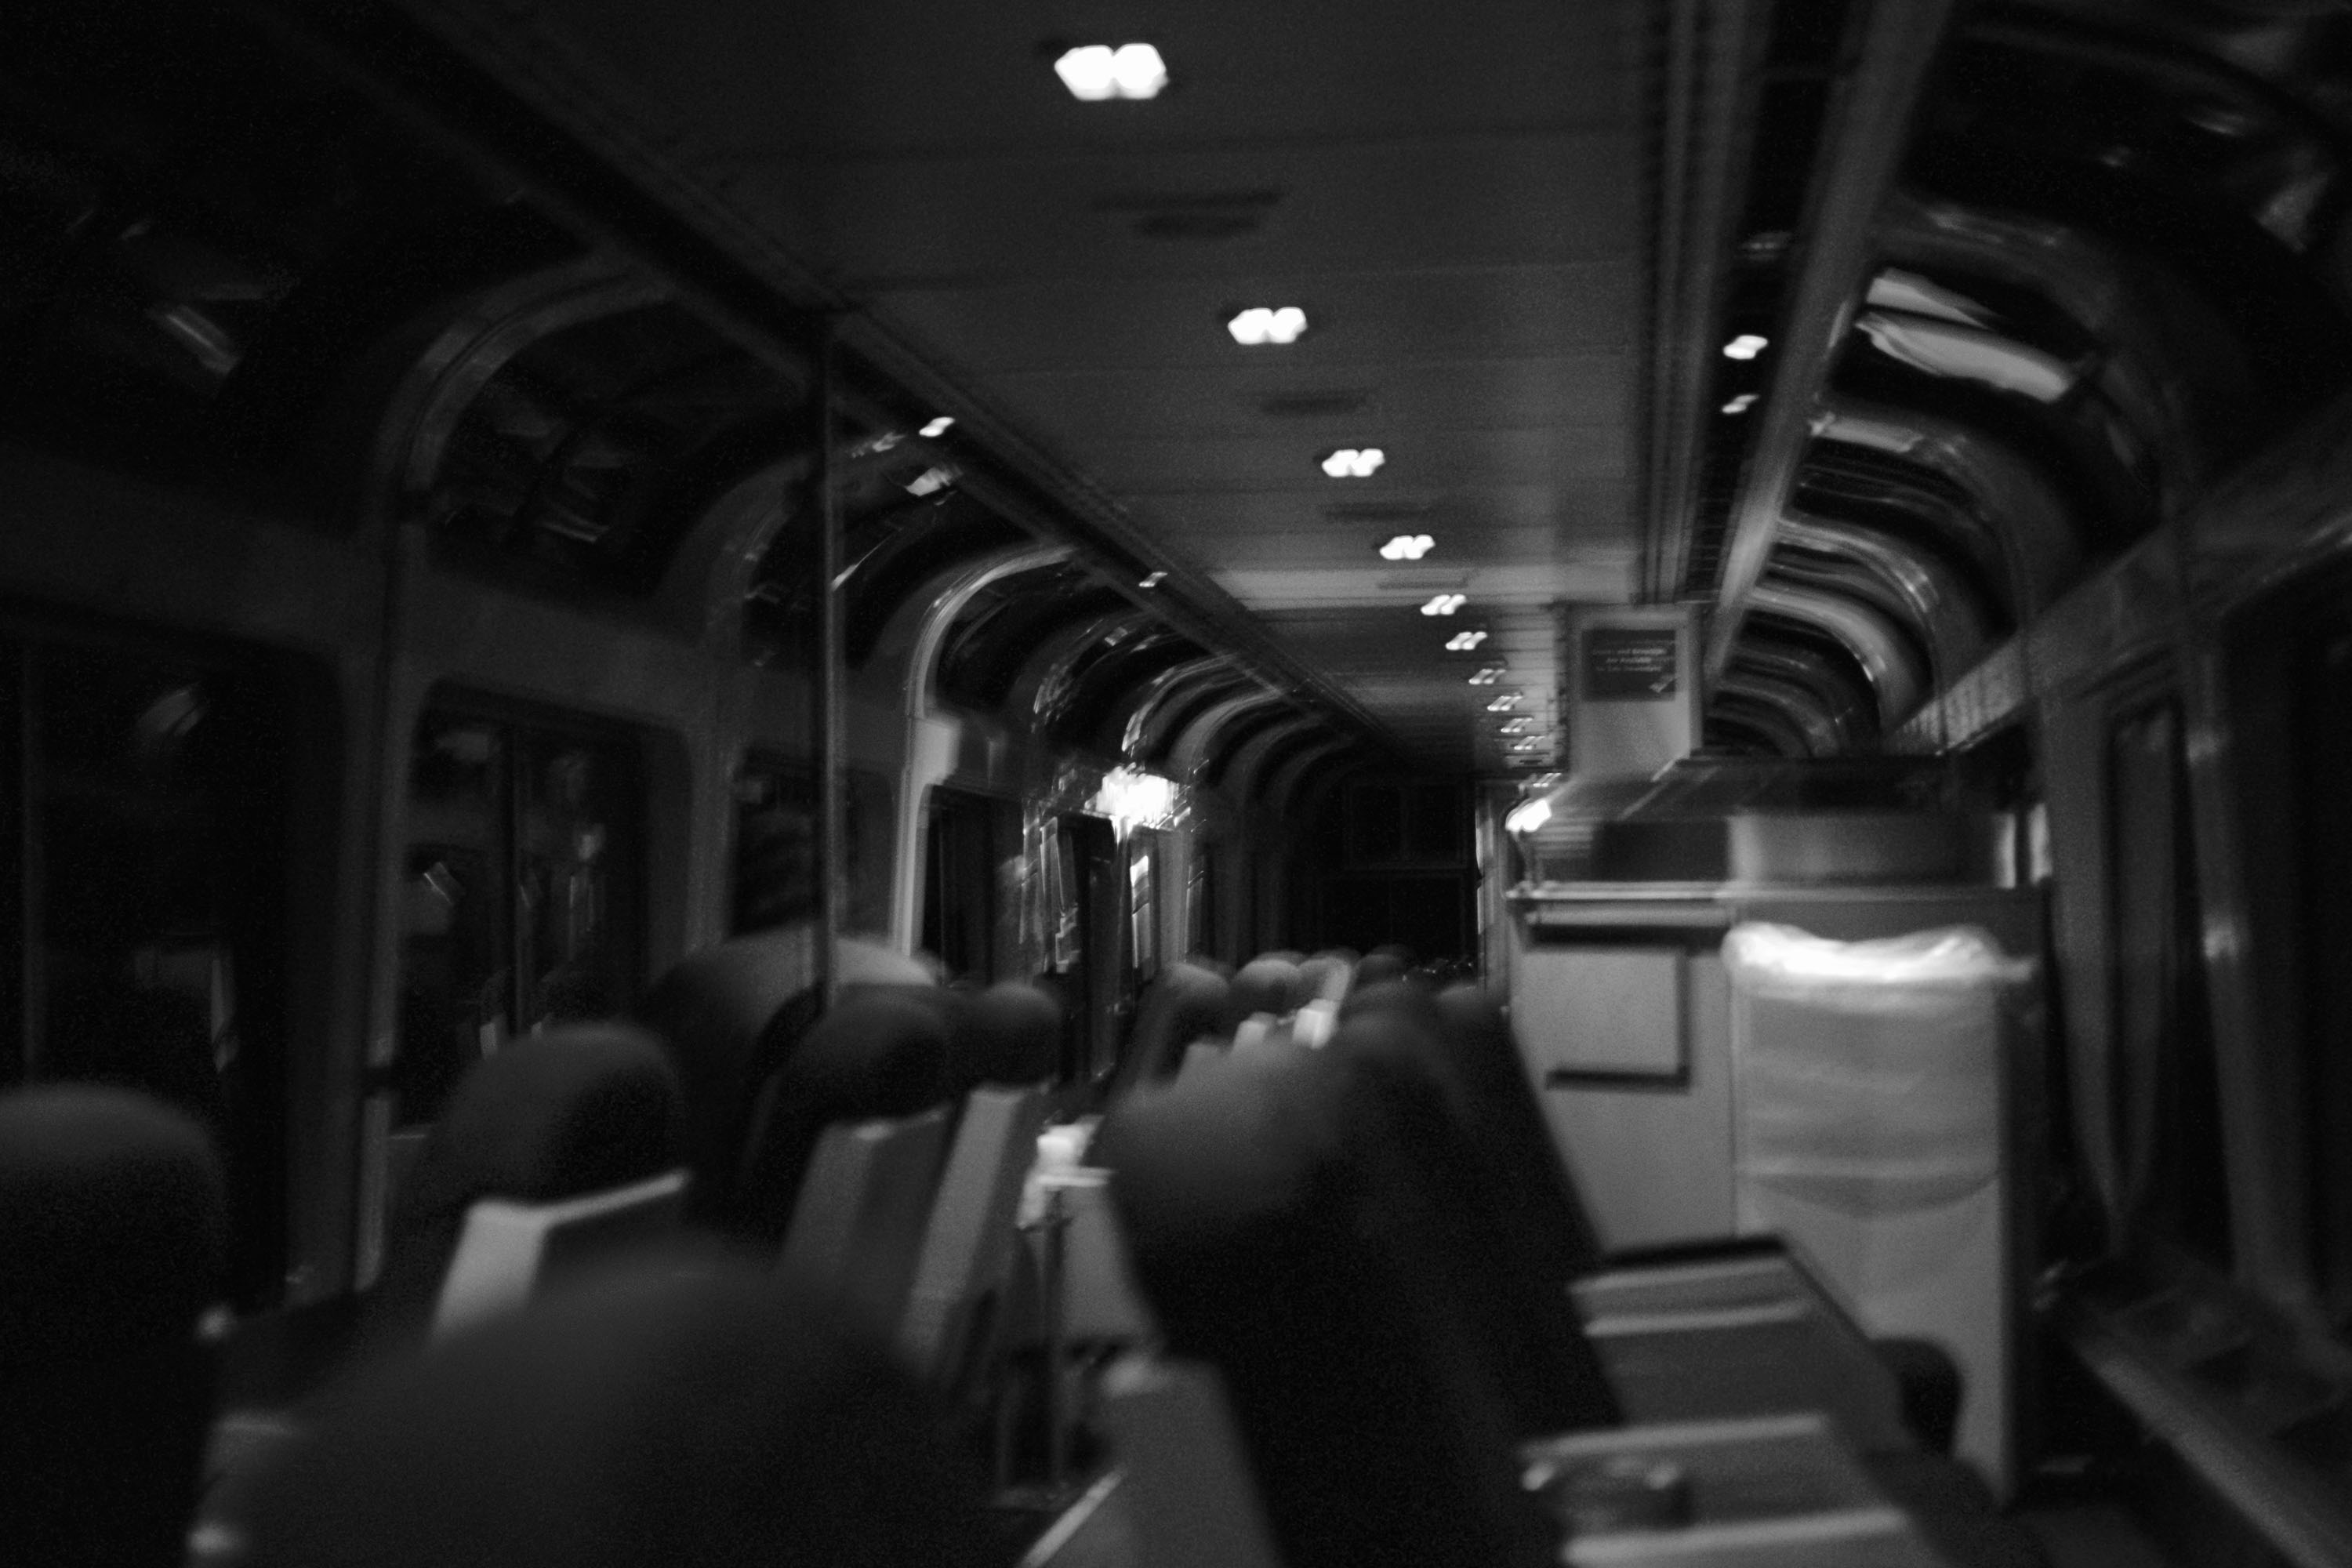 Relaxing nighttime observation car